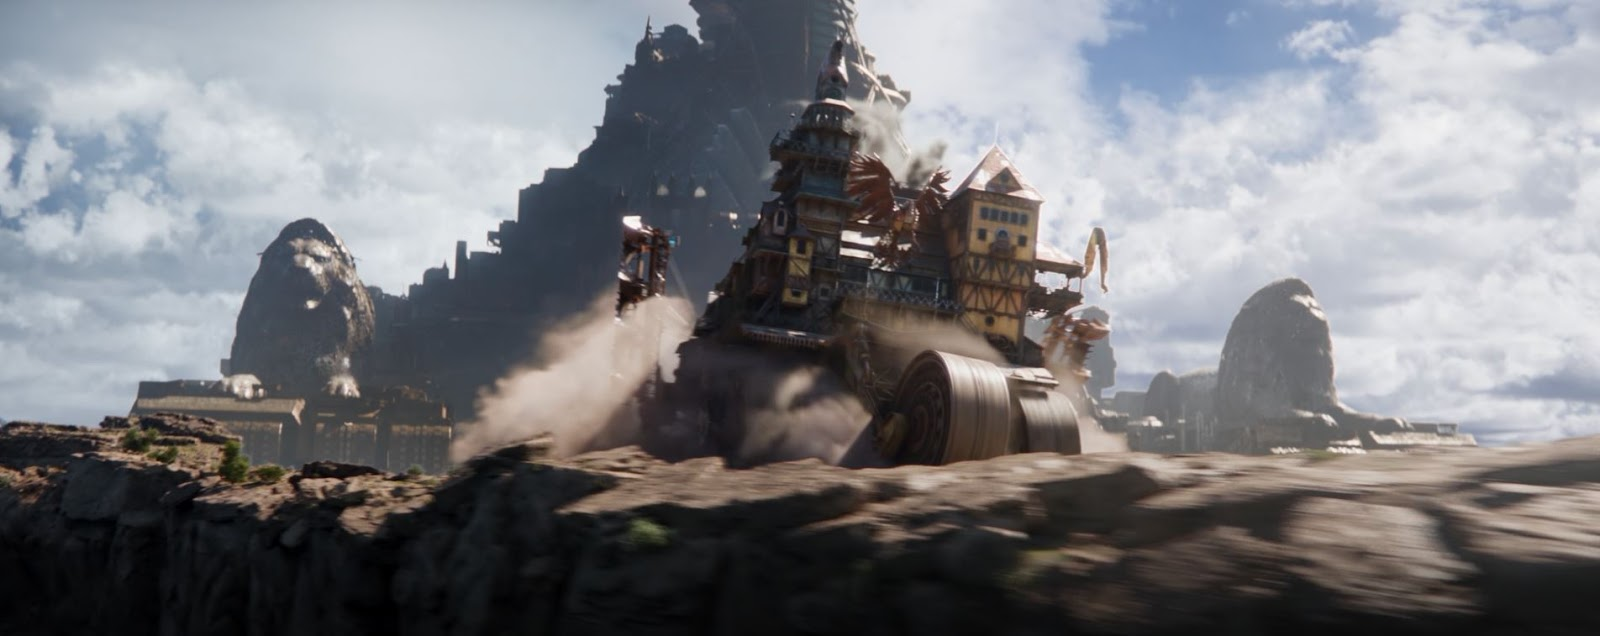 The best quotes from the Mortal Engines movie | Making the